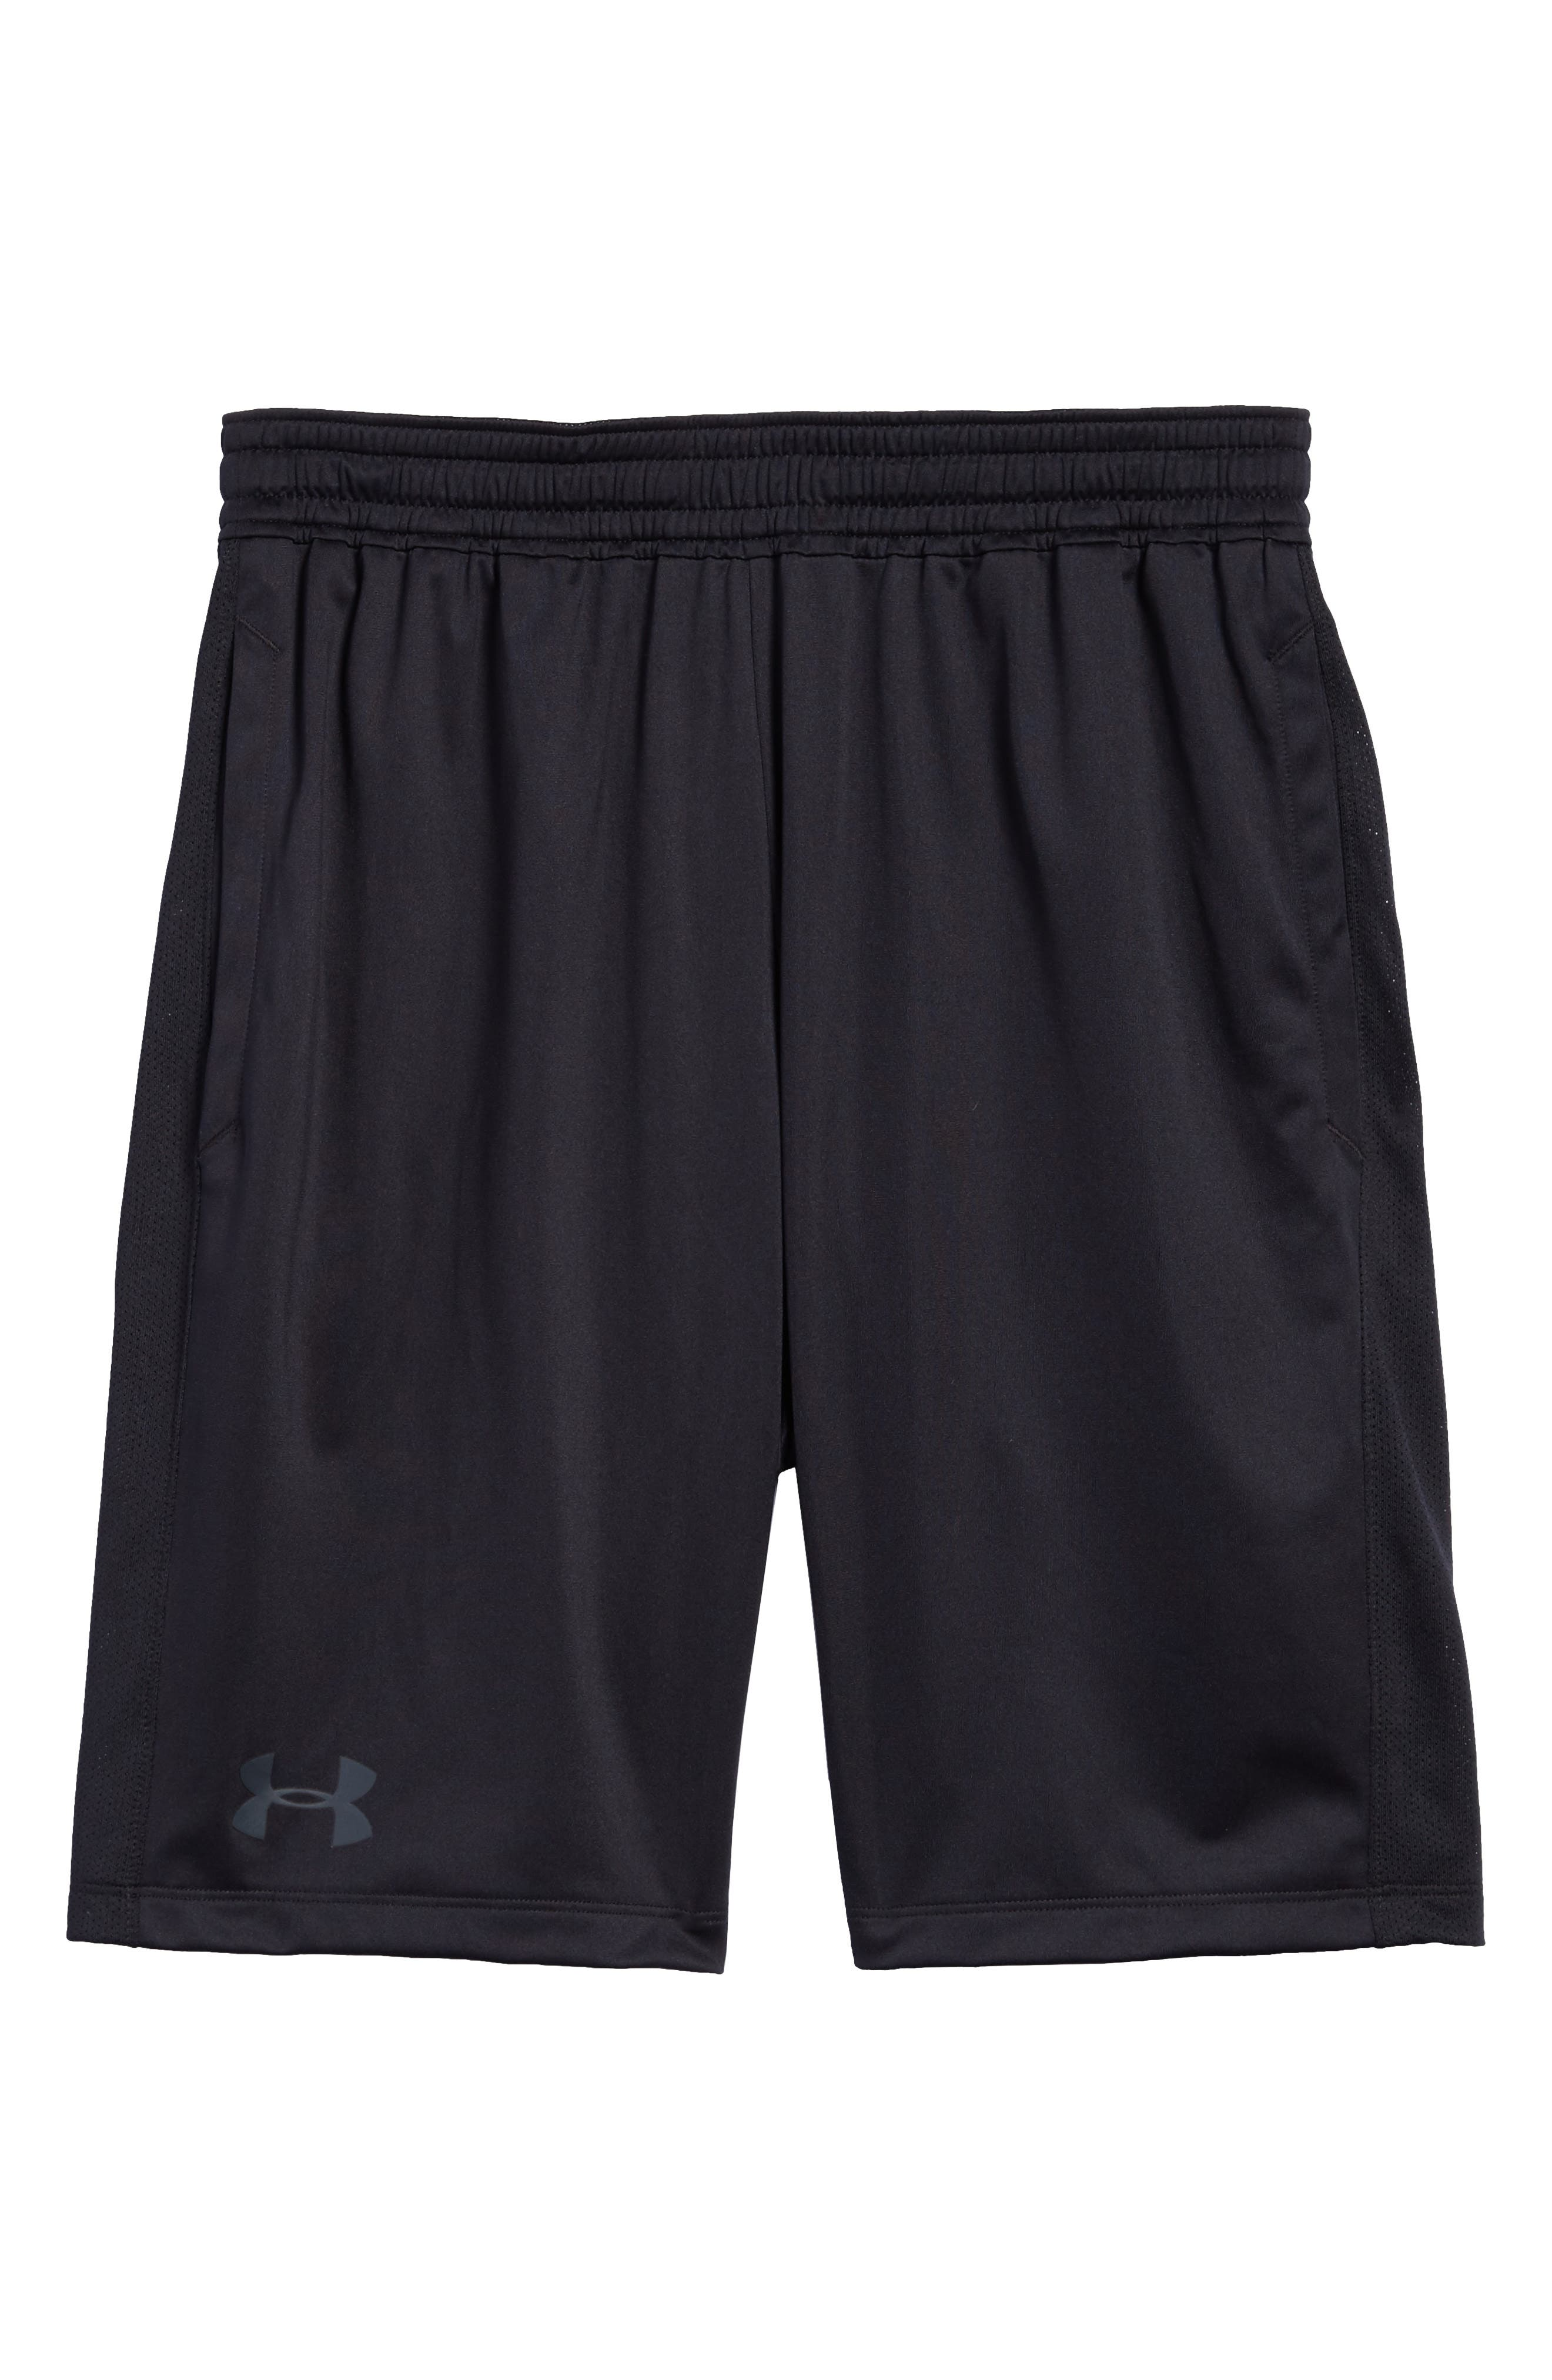 Raid 2.0 Classic Fit Shorts,                             Alternate thumbnail 6, color,                             BLACK